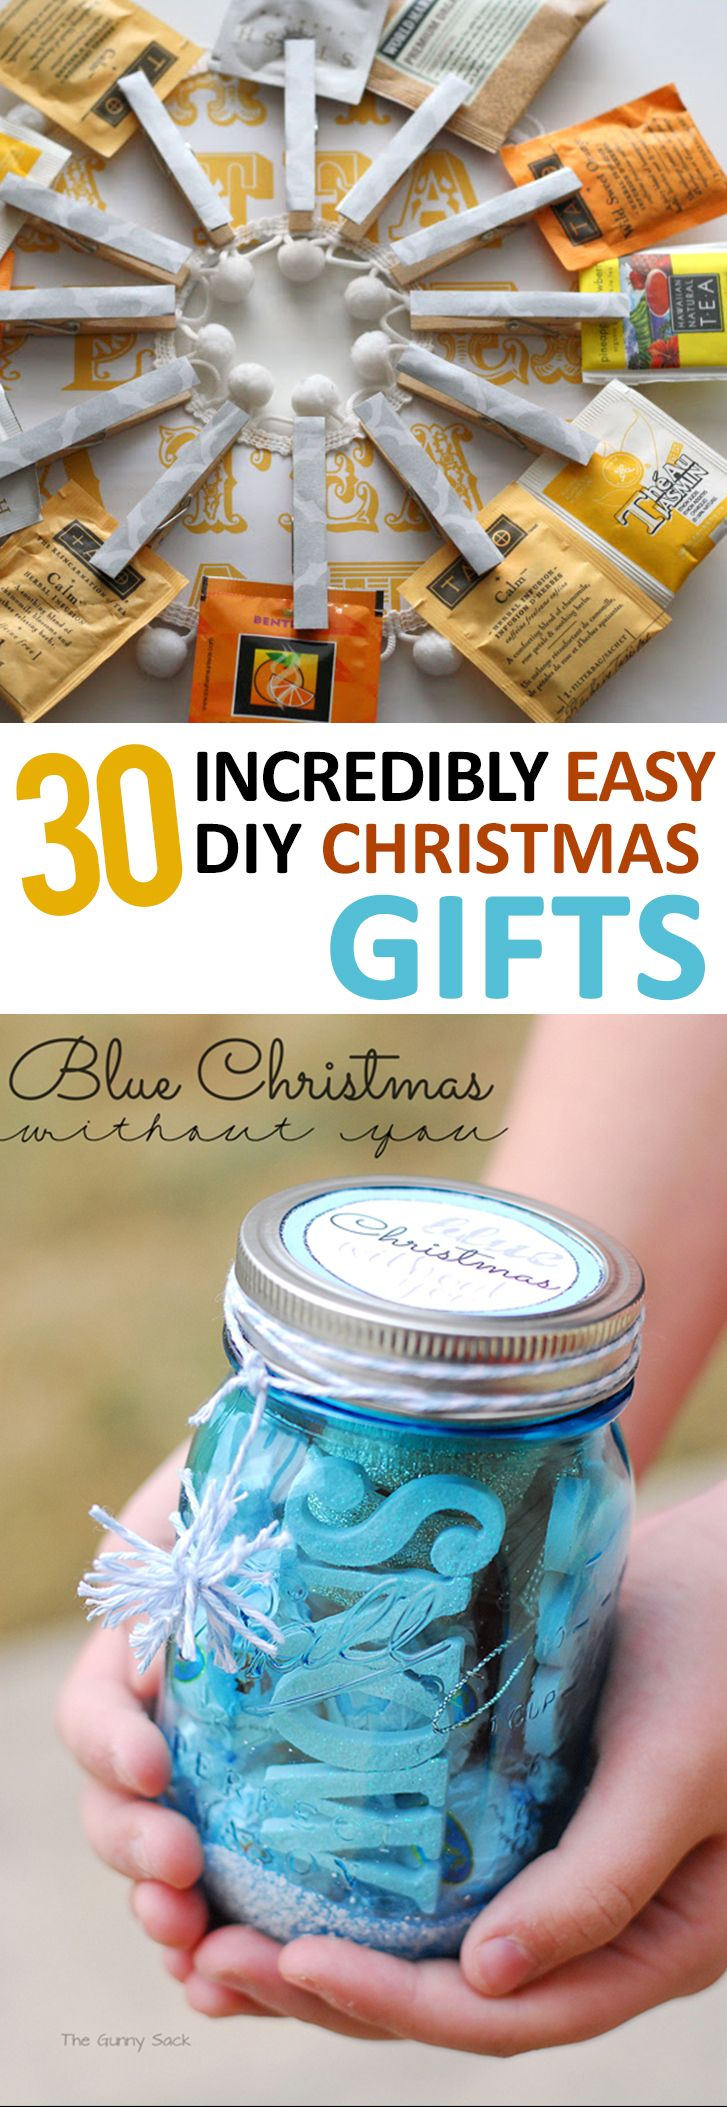 72 best images about gift ideas on pinterest Do it yourself christmas gifts